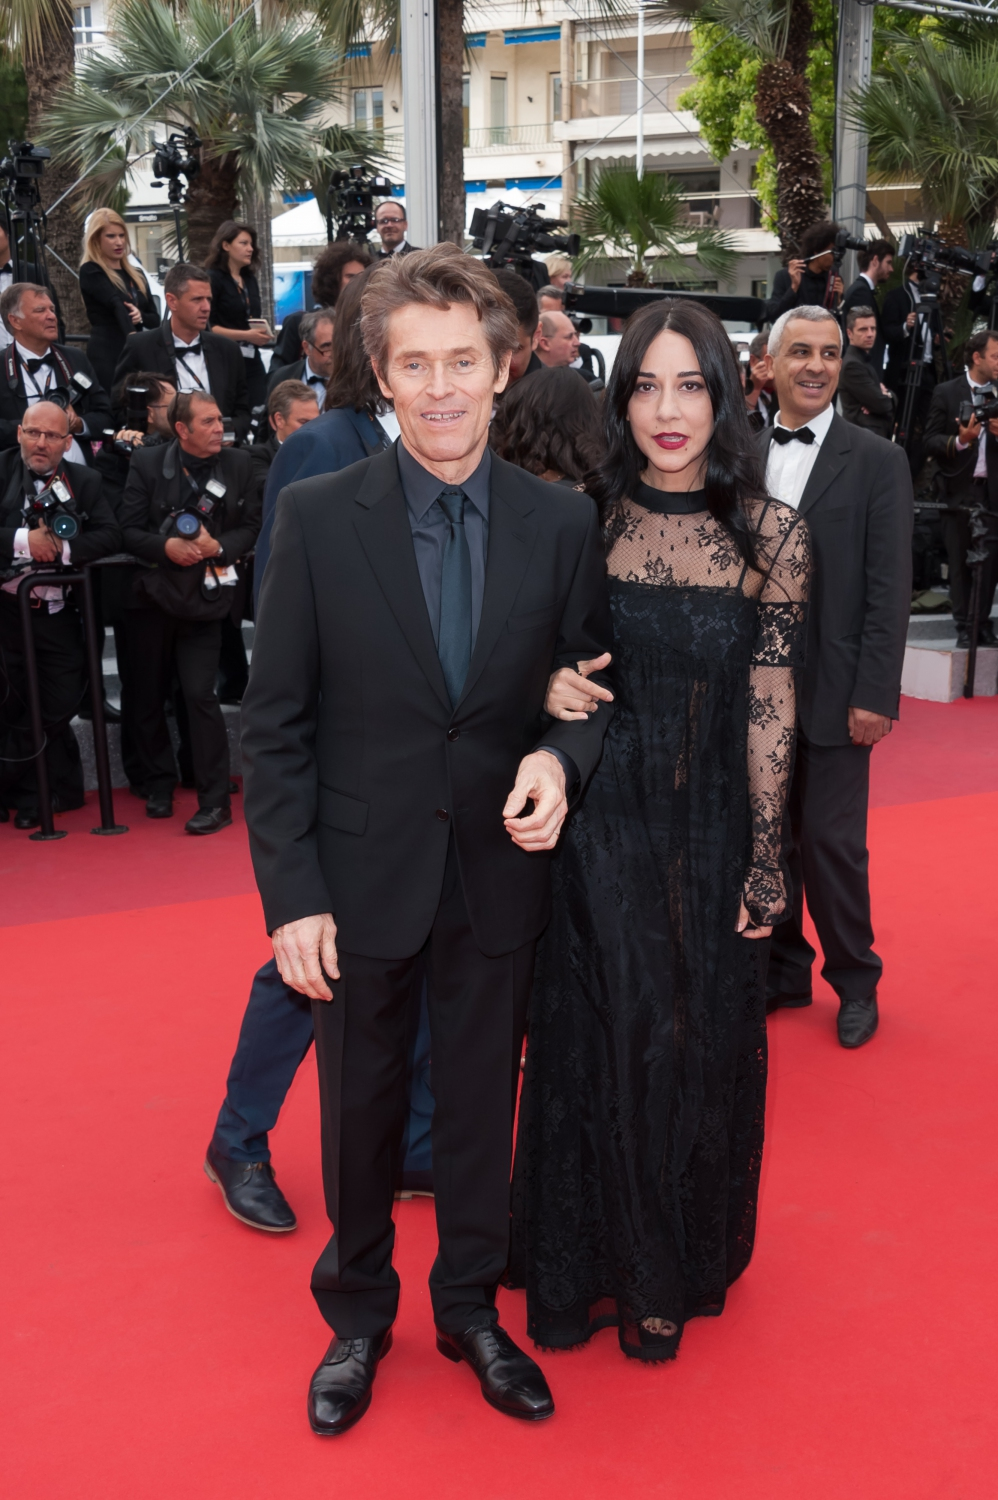 willem dafoe cannes 2016 derni re mont e des marches pour les stars elle. Black Bedroom Furniture Sets. Home Design Ideas